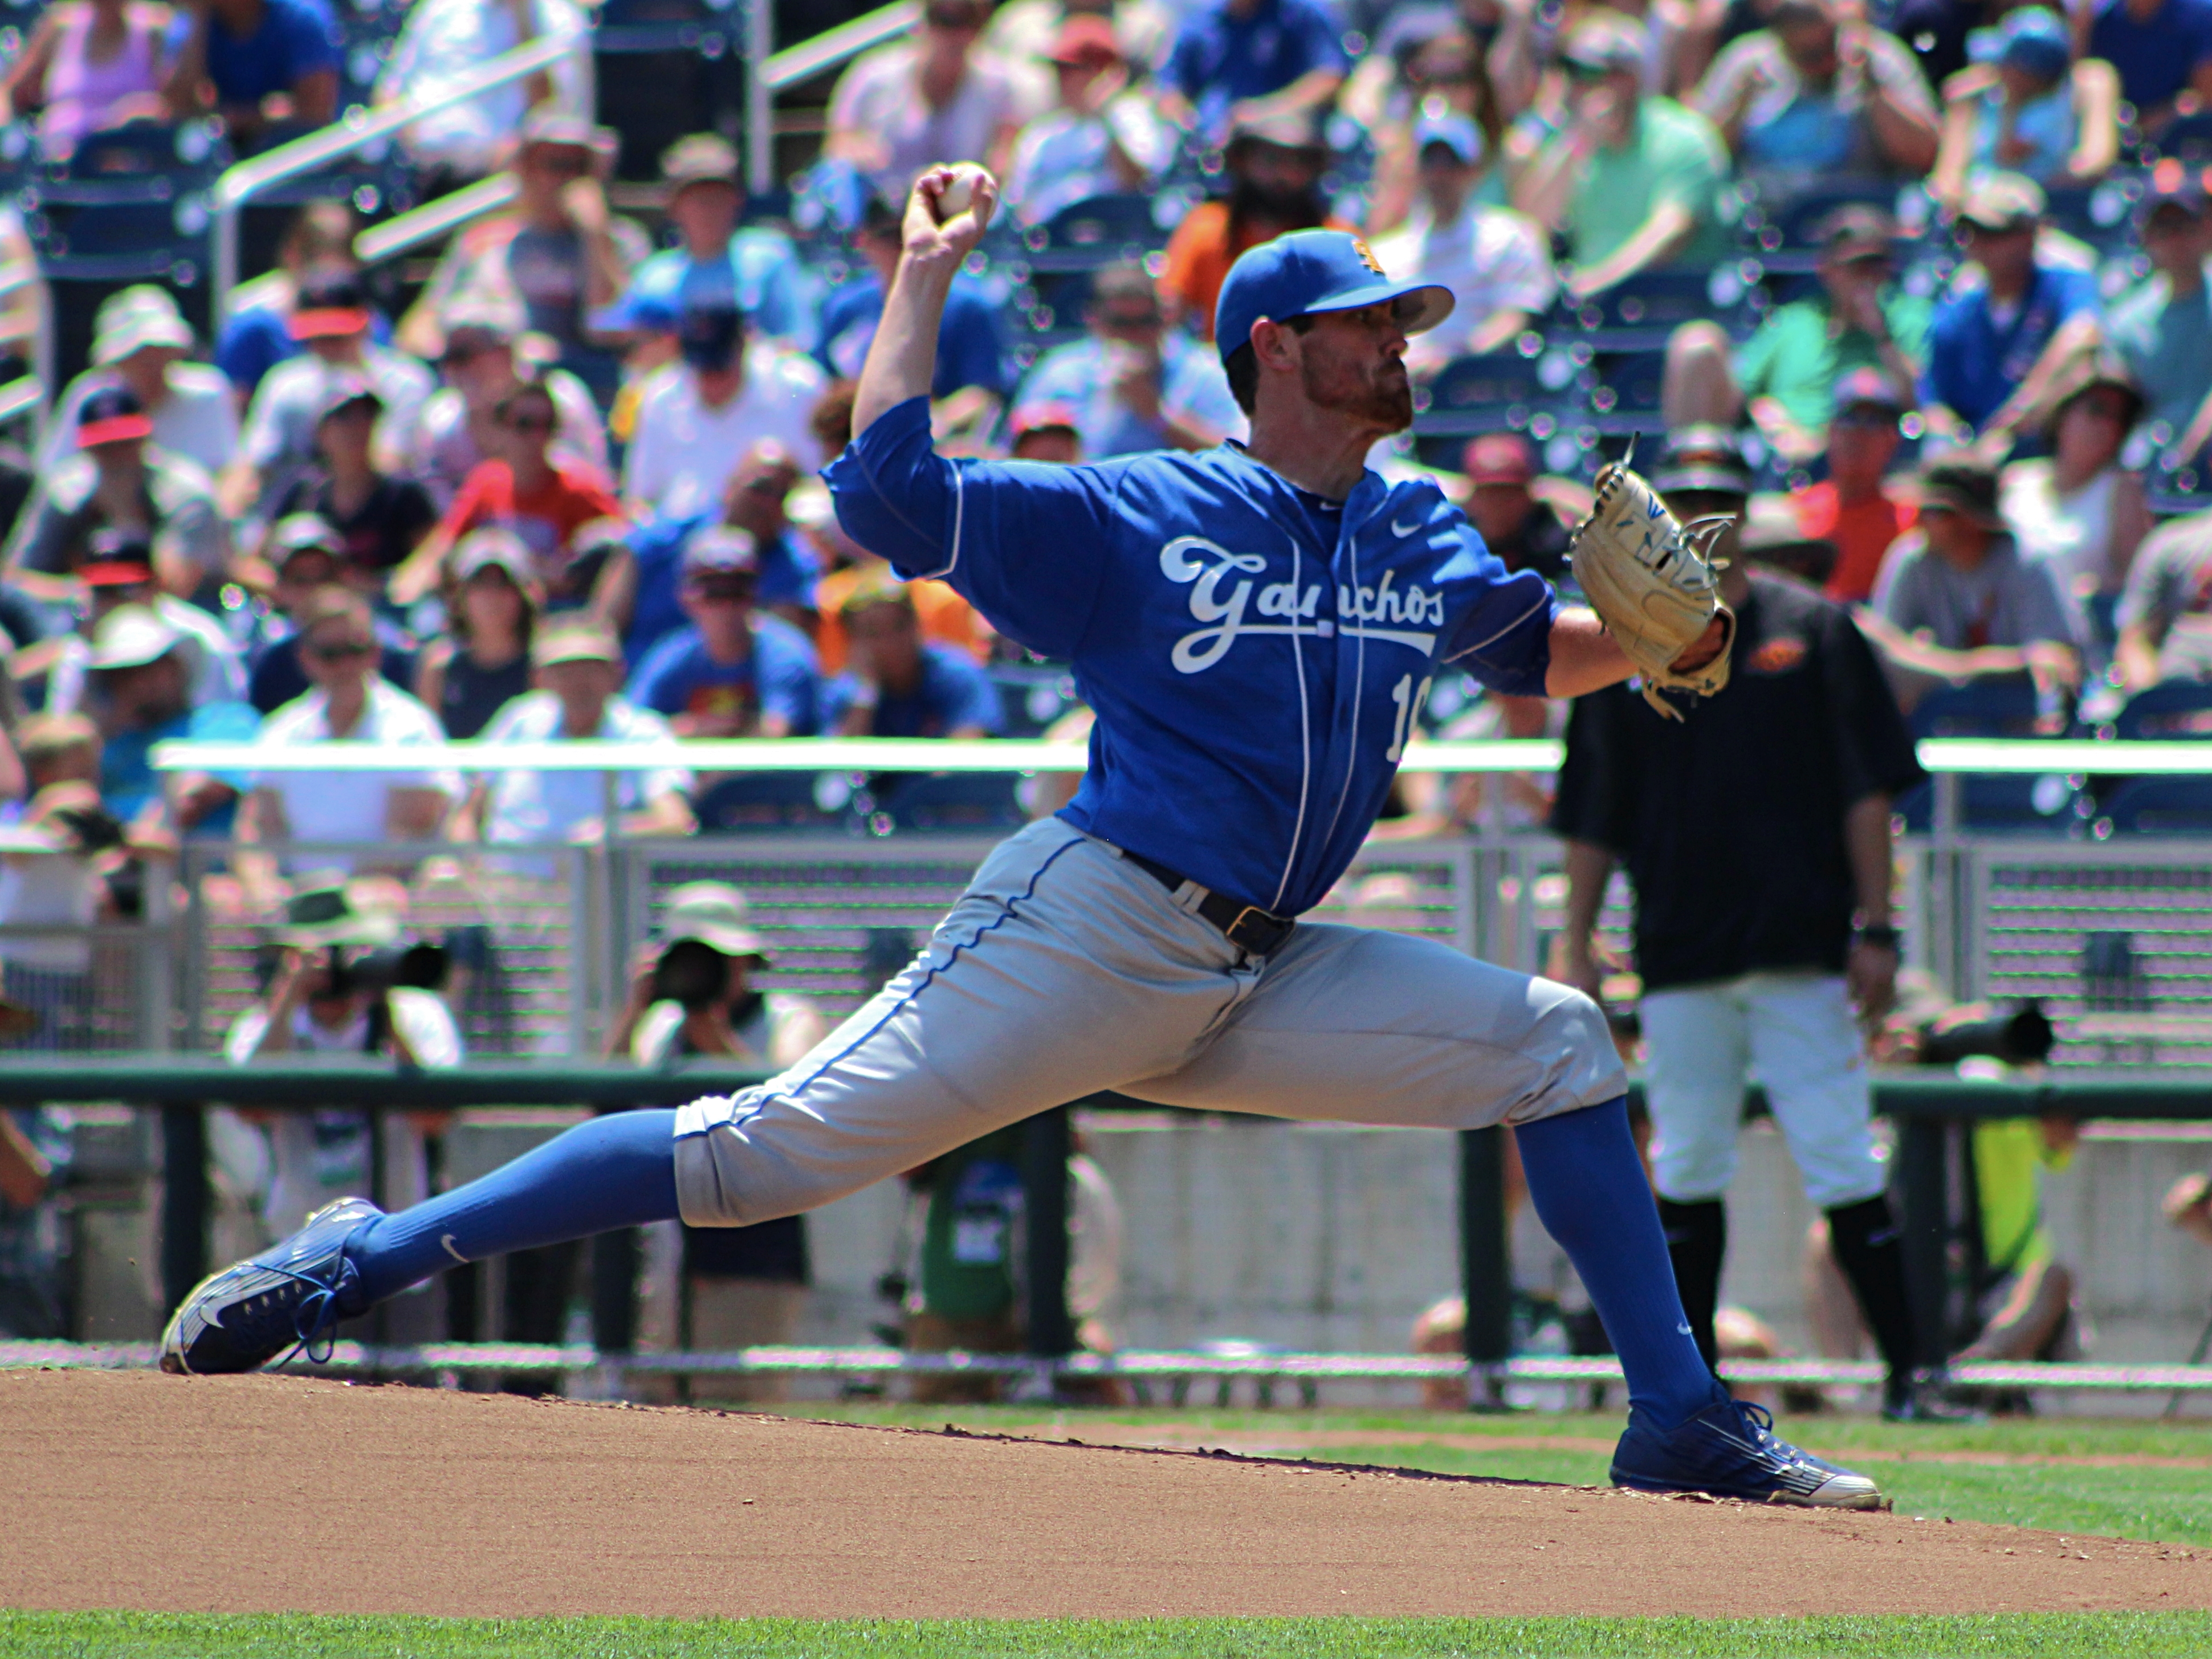 Junior Shane Bieber pitched a complete game allowing only six hits and one run is the Gauchos loss. O'Colly / Devin Wilber